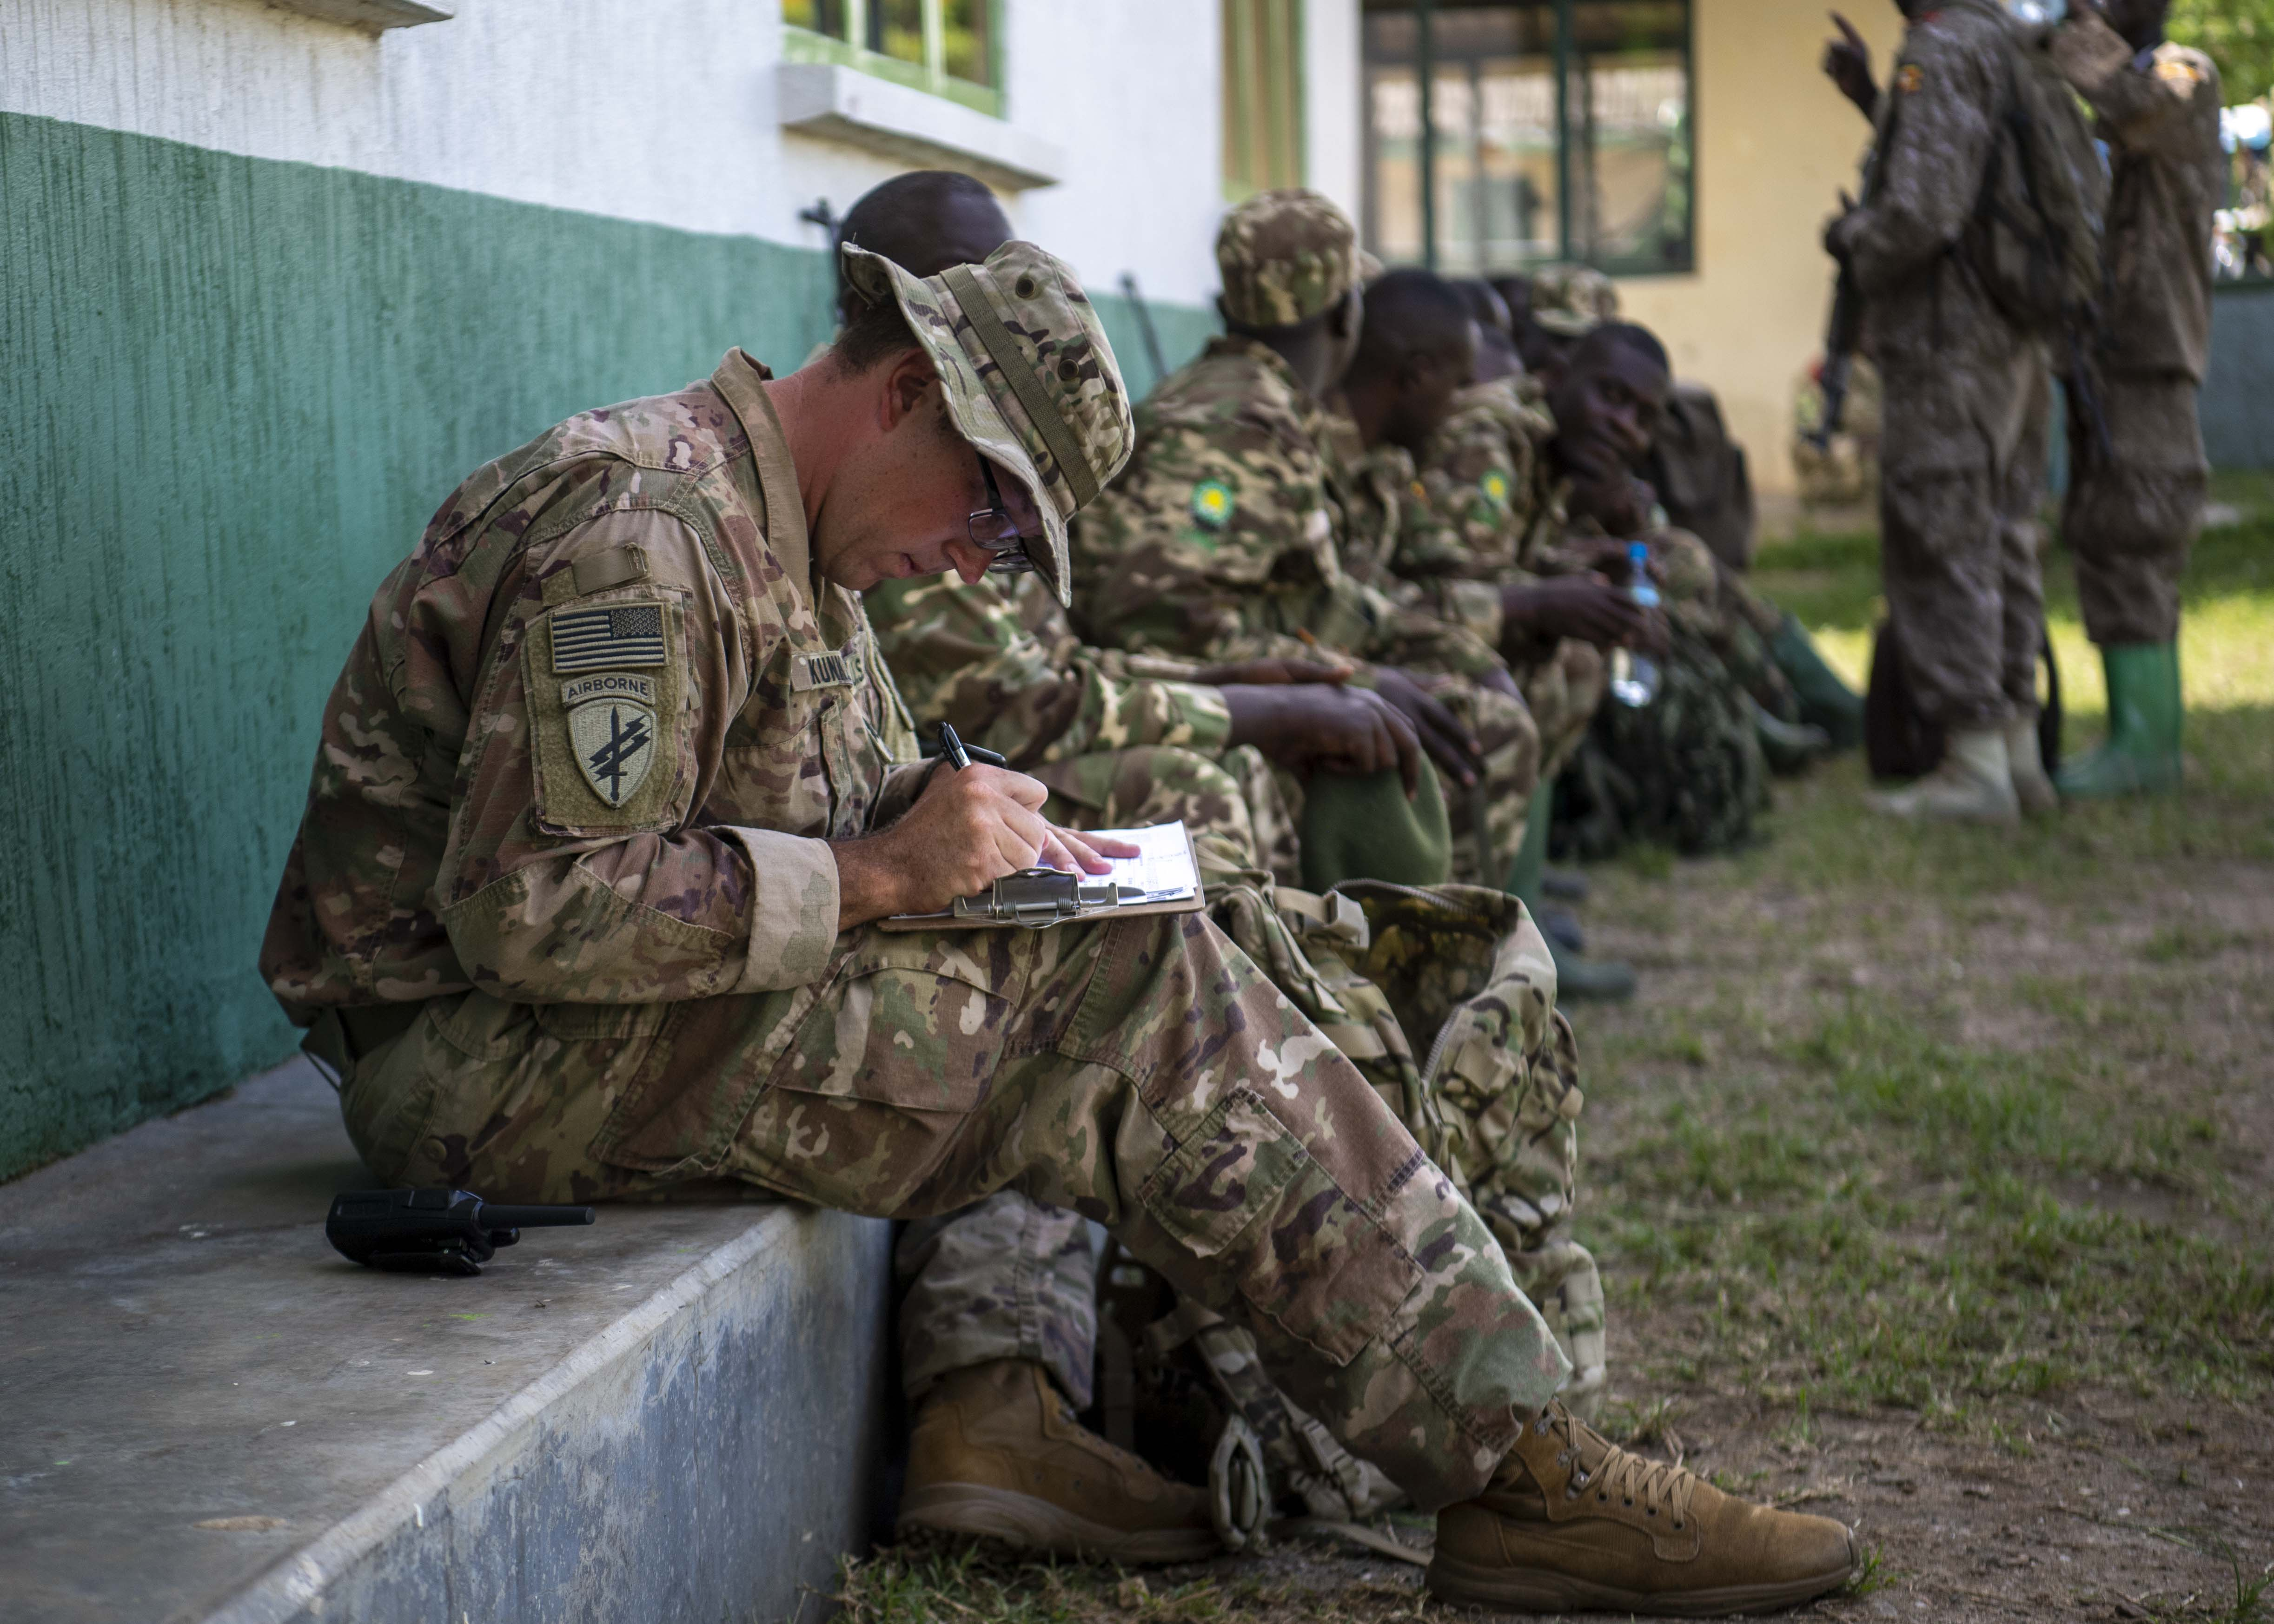 U.S. Army Sgt. Jason Kunkle, instructor, 403rd Civil Affairs Battalion assigned to Combined Joint Task Force-Horn of Africa writes a team evaluation during a Counter Illicit Trafficking Junior Leadership Course examination at Queen Elizabeth Park, Uganda, Oct. 10, 2019. Kunkle was one of six instructors who taught Uganda Wildlife Authority (UWA) Rangers how to conduct land navigation, conduct small unit tactics, respond to wildlife crimes, ethics and medically treat a casualty. (U.S. Air Force photo by Staff Sgt. J.D. Strong II)